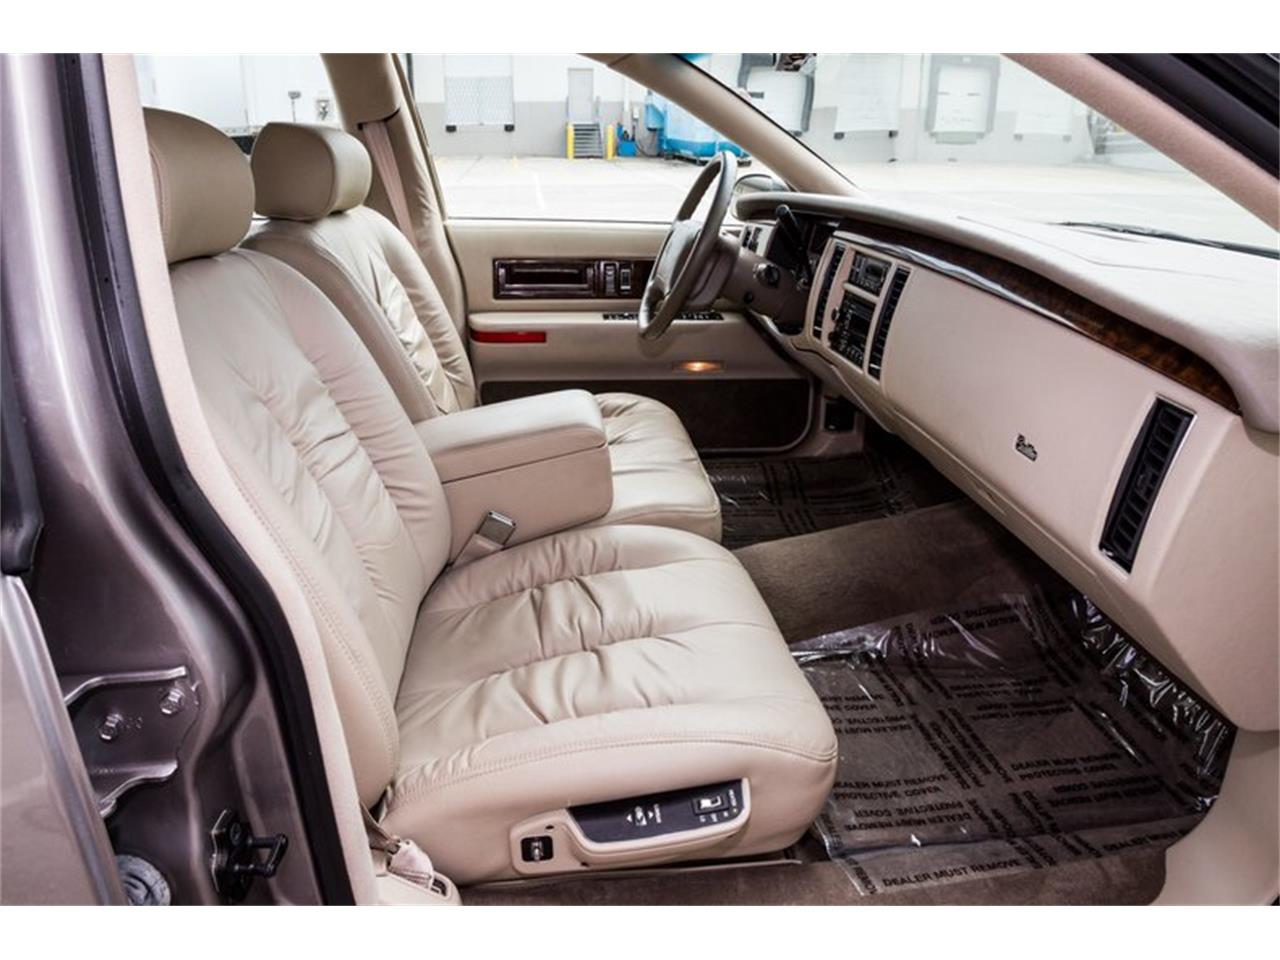 Large Picture of 1996 Fleetwood located in Florida - $32,900.00 Offered by Orlando Classic Cars - Q8PS